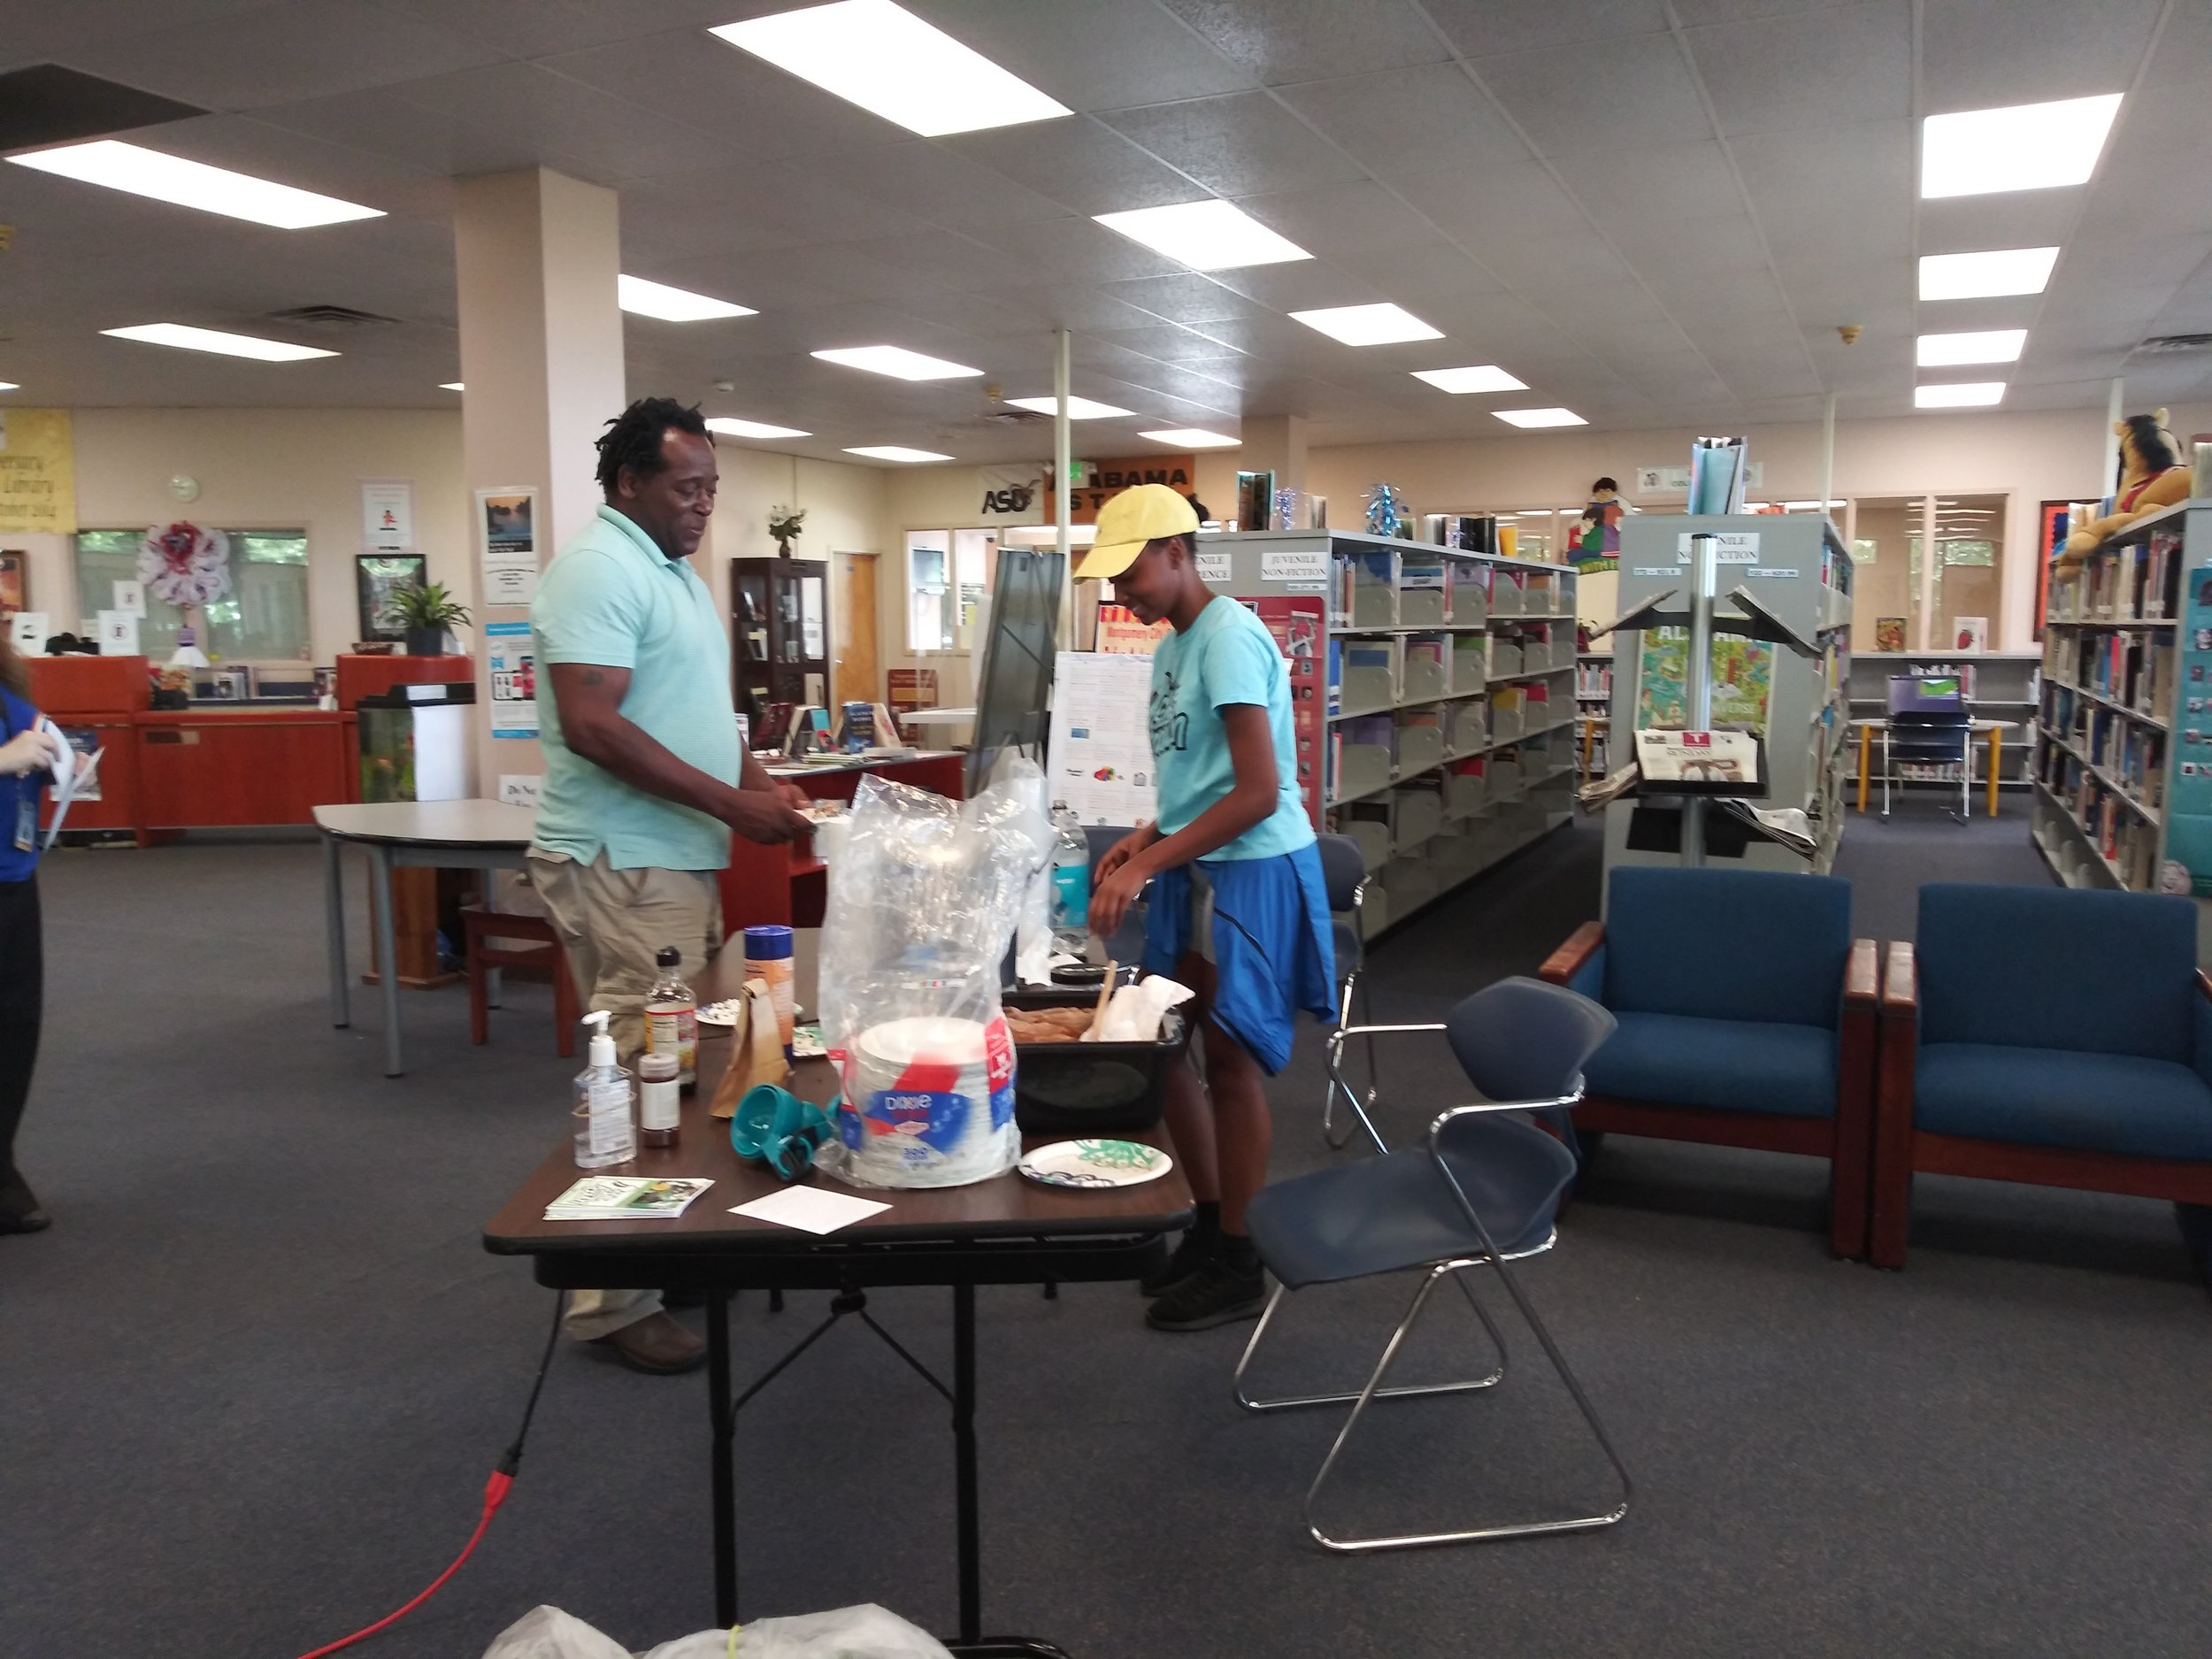 Summer intern Dalayli Franklin serving up healthy snacks at the library.